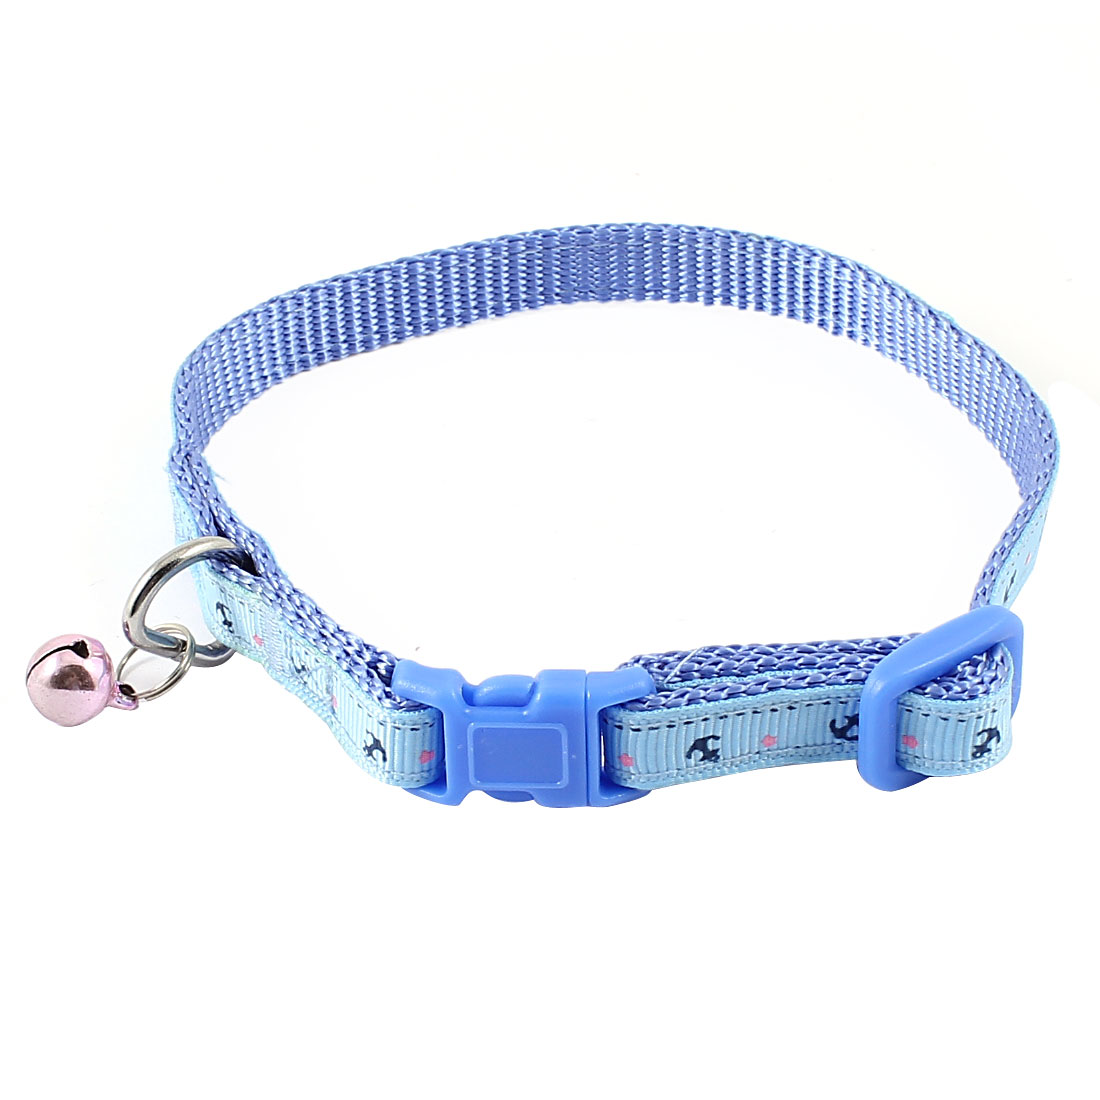 Release Buckle Pink Metal Bell Detail Anchor Pattern Nylon Adjustable Belt Collar Blue for Pet Cat Dog Doggy